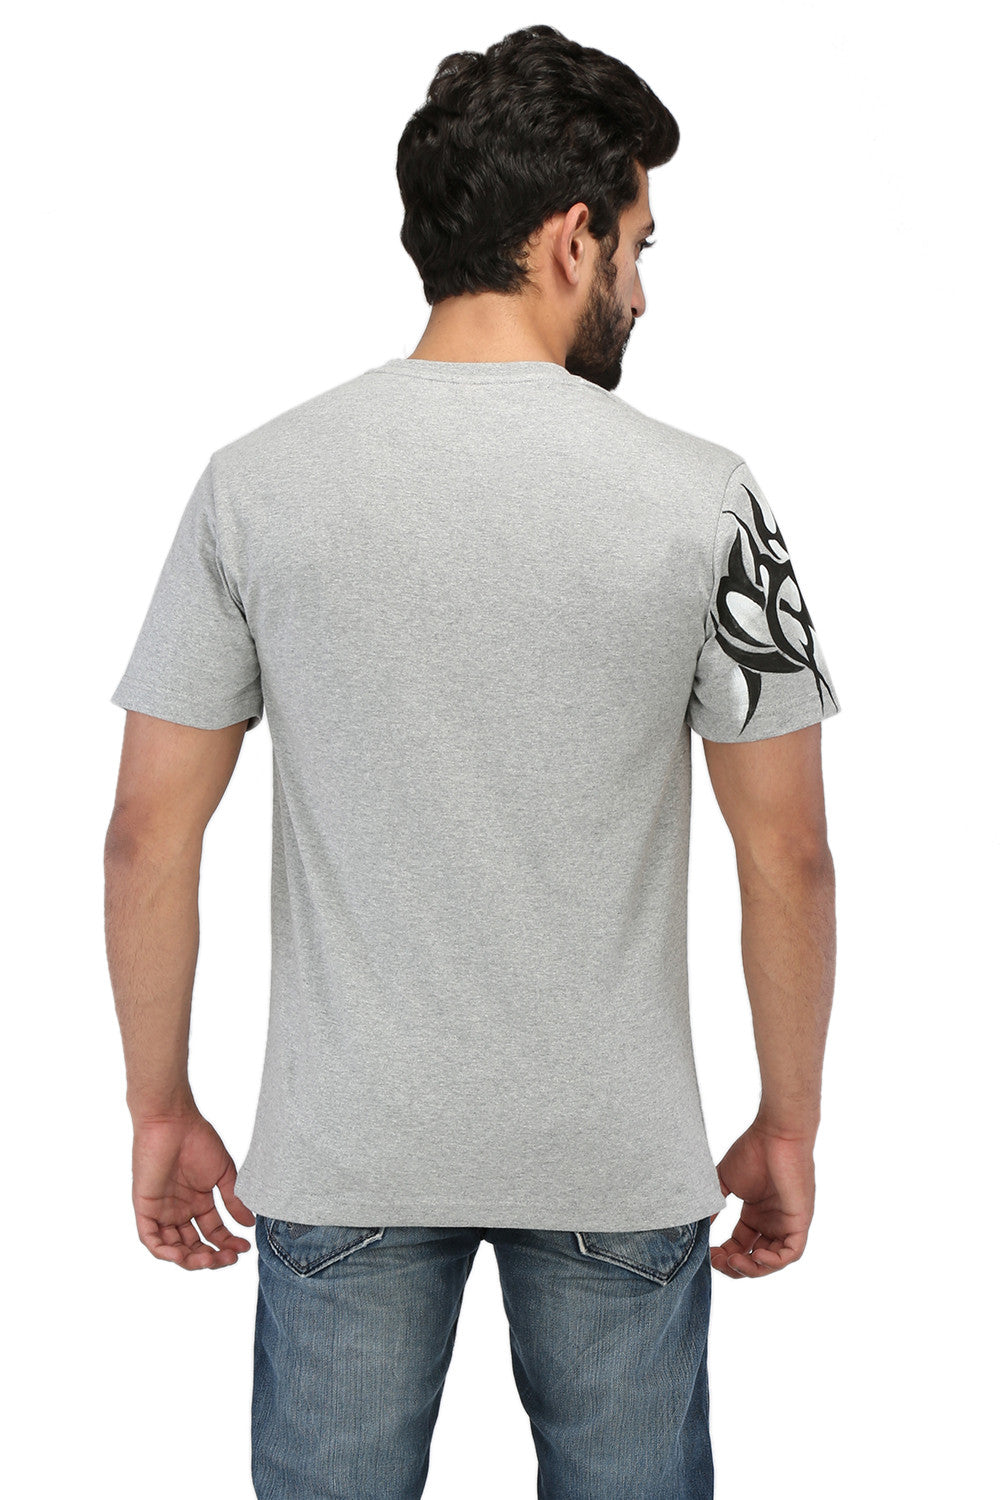 Hand-painted Tribal Muse Grey T-shirt - Rang Rage  - 2